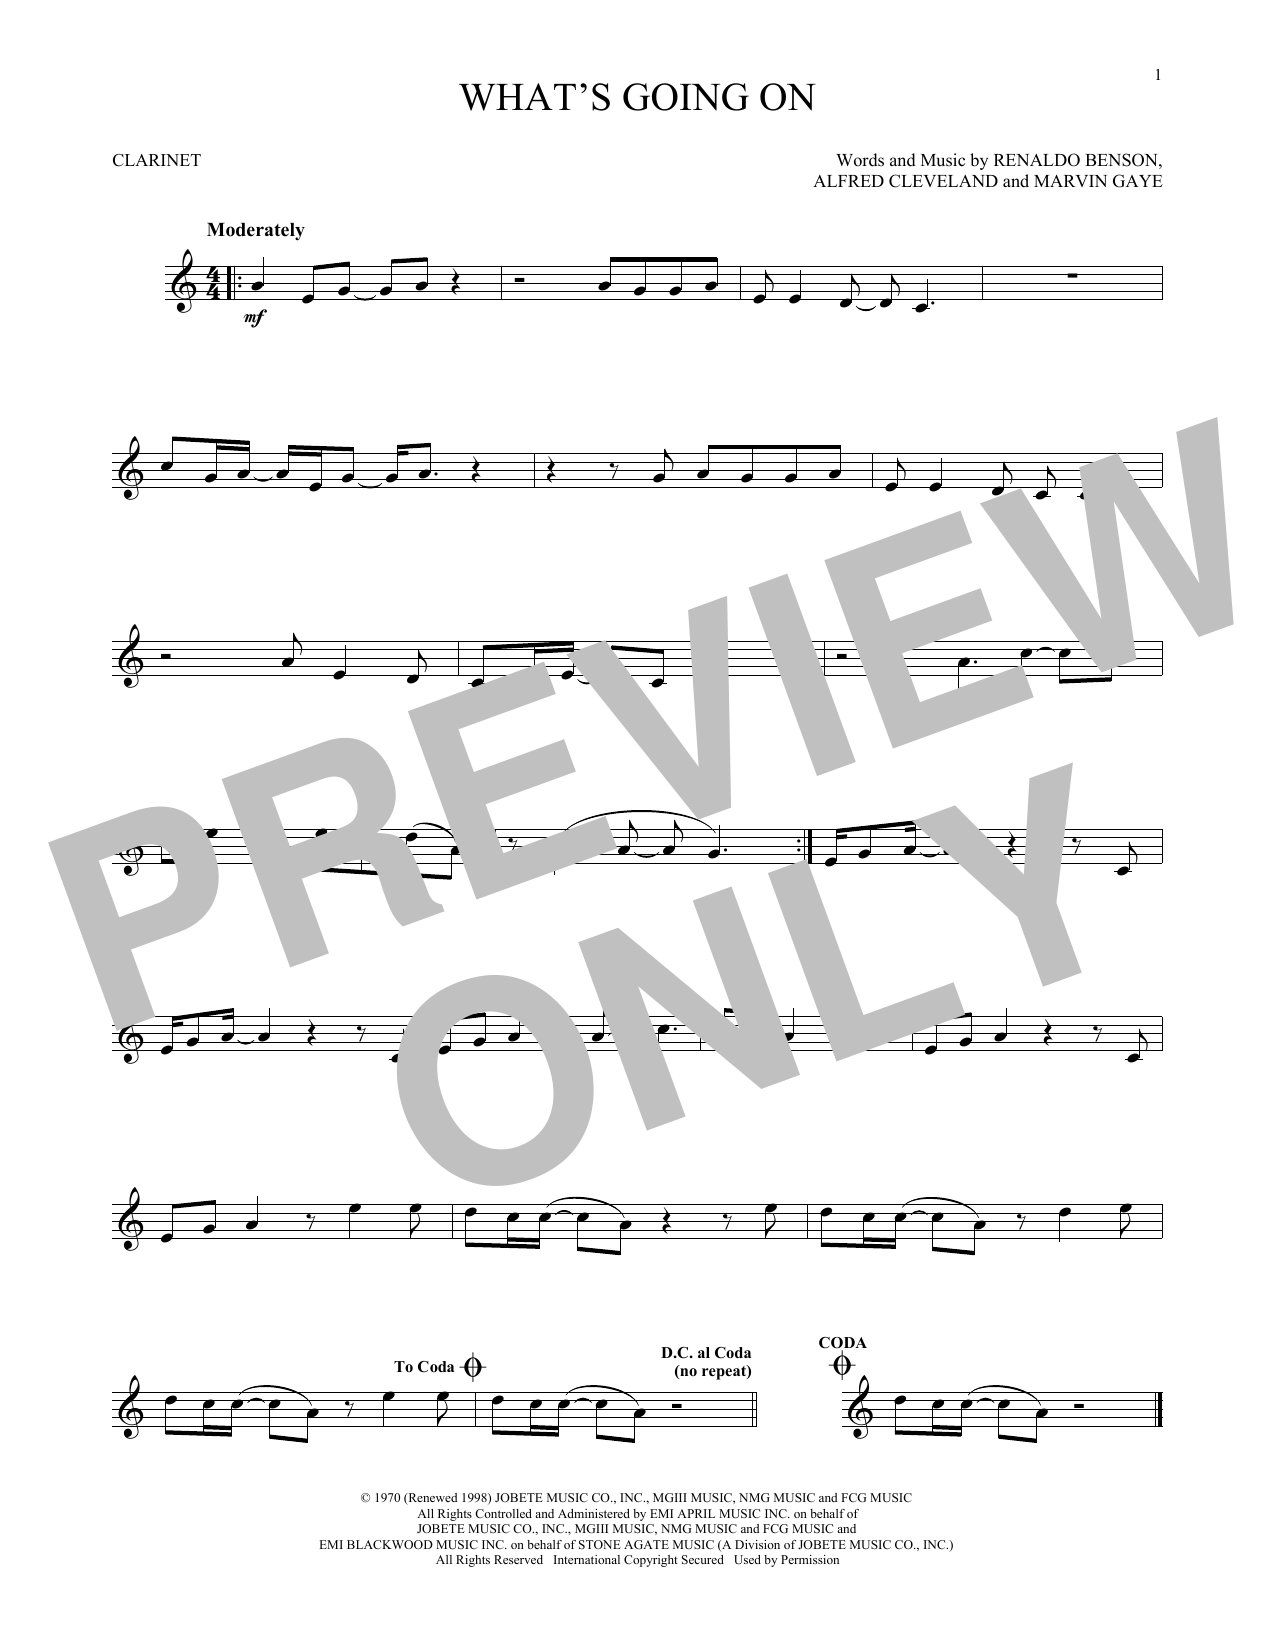 What's Going On (Clarinet Solo)